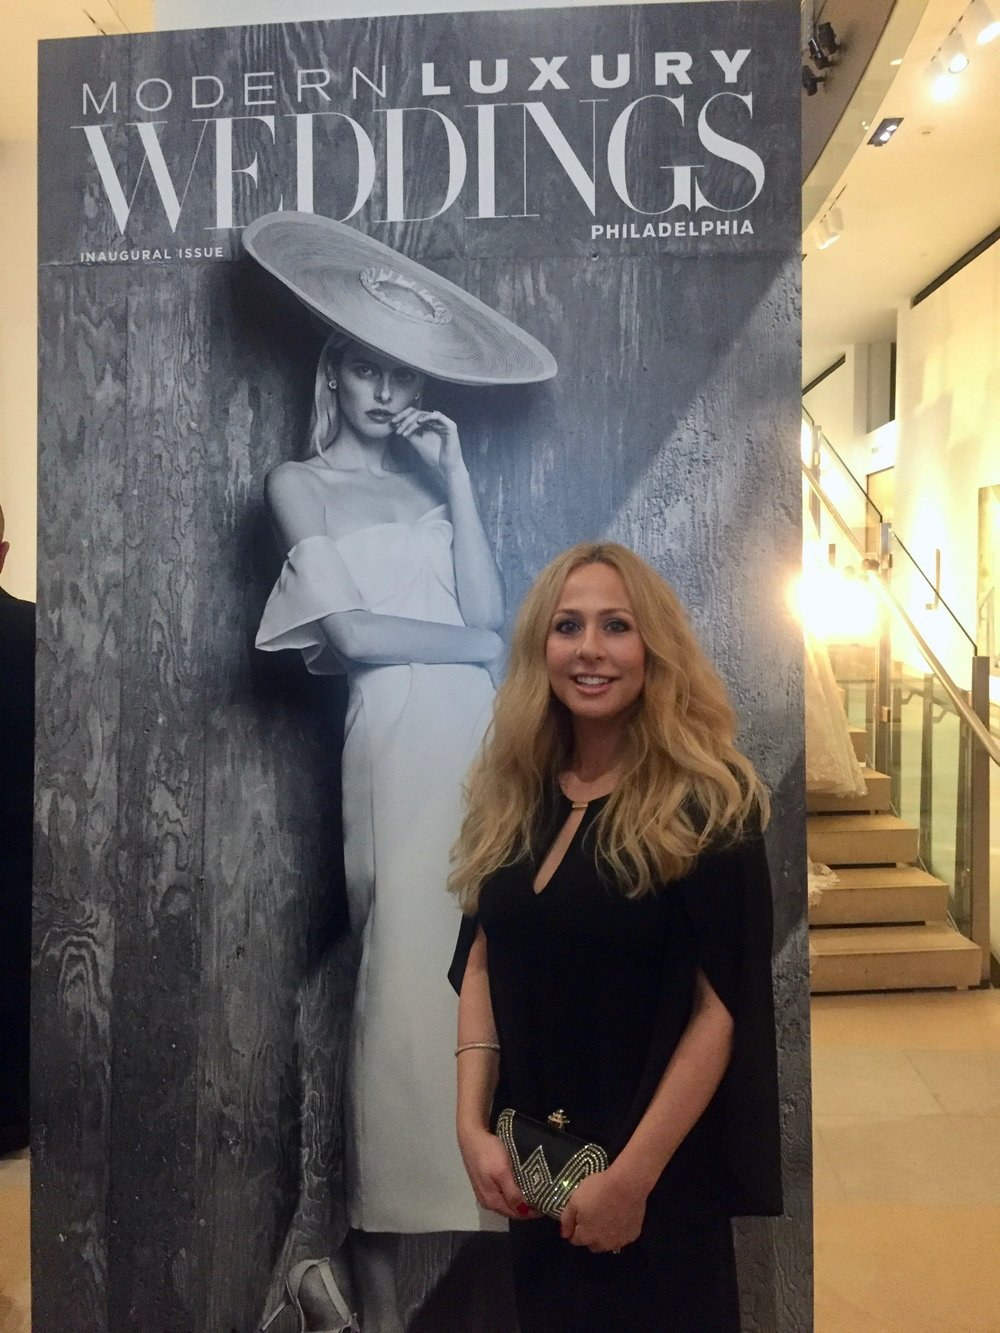 74e570dd797 I attended the celebration of the inaugural issue of Modern Luxury Weddings  Philadelphia Magazine in June. The party was at the Pennsylvania Academy of  the ...